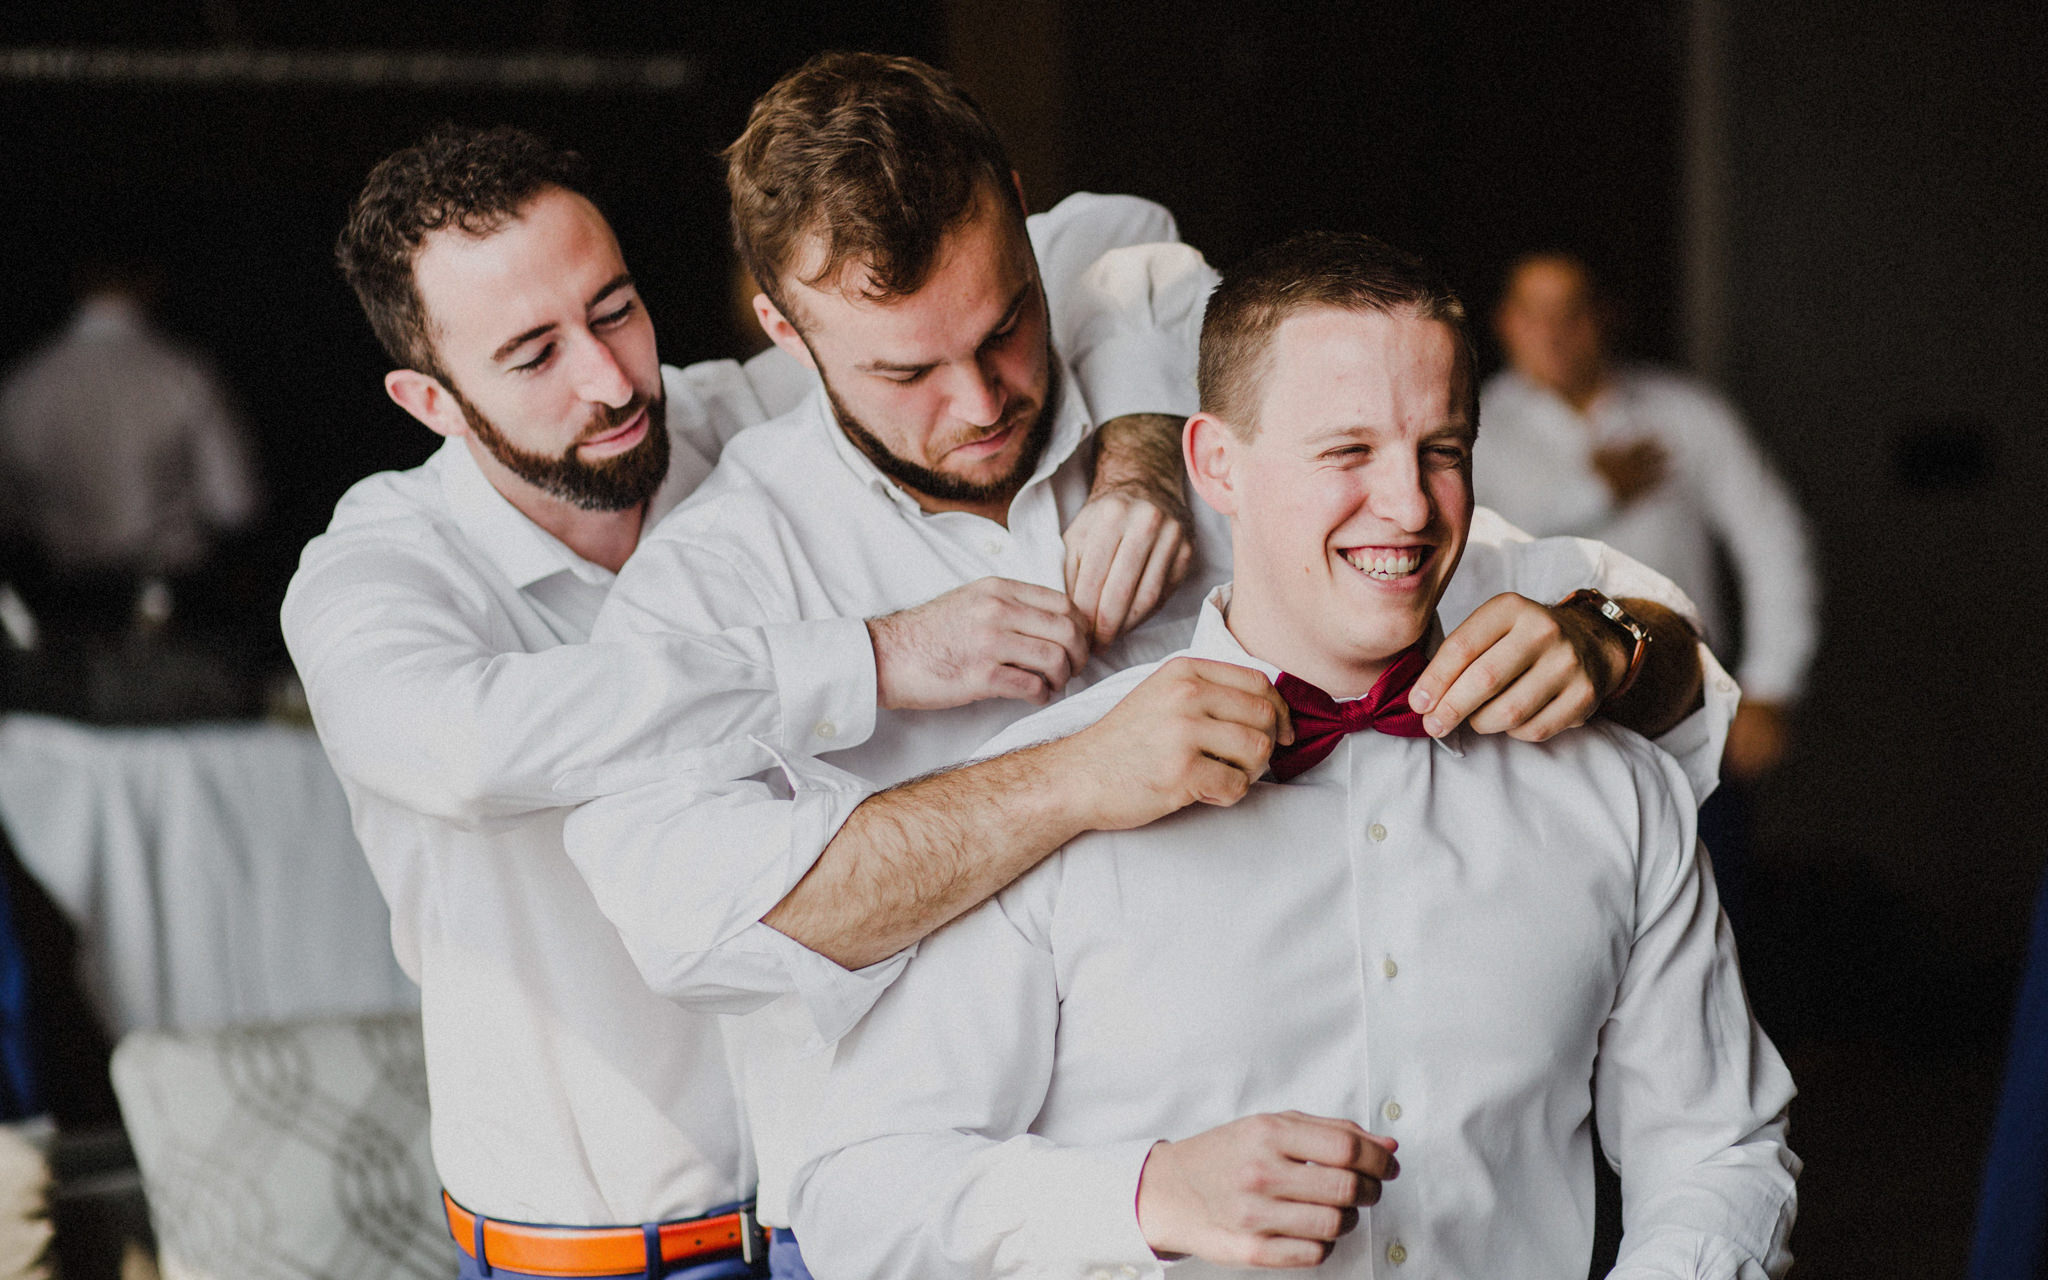 groomsmen help groom get ready